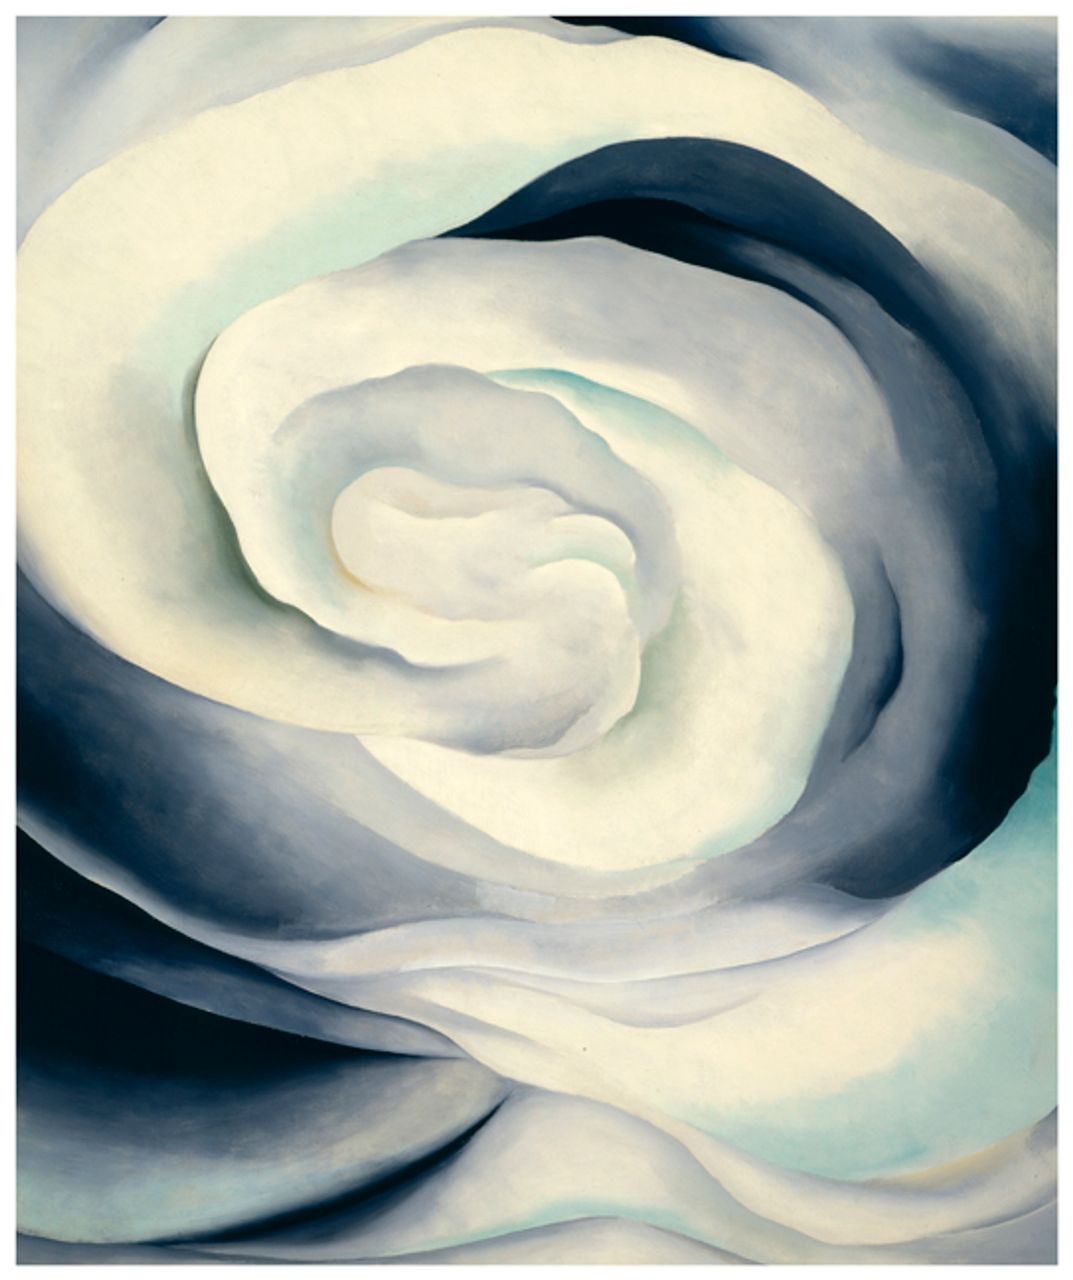 Abstraction White Rose, 1927 oil paint on canvas image: 914 x 762 mm Georgia O'Keeffe Museum, Gift of The Burnett Foundation and The Georgia O'Keeffe Foundation